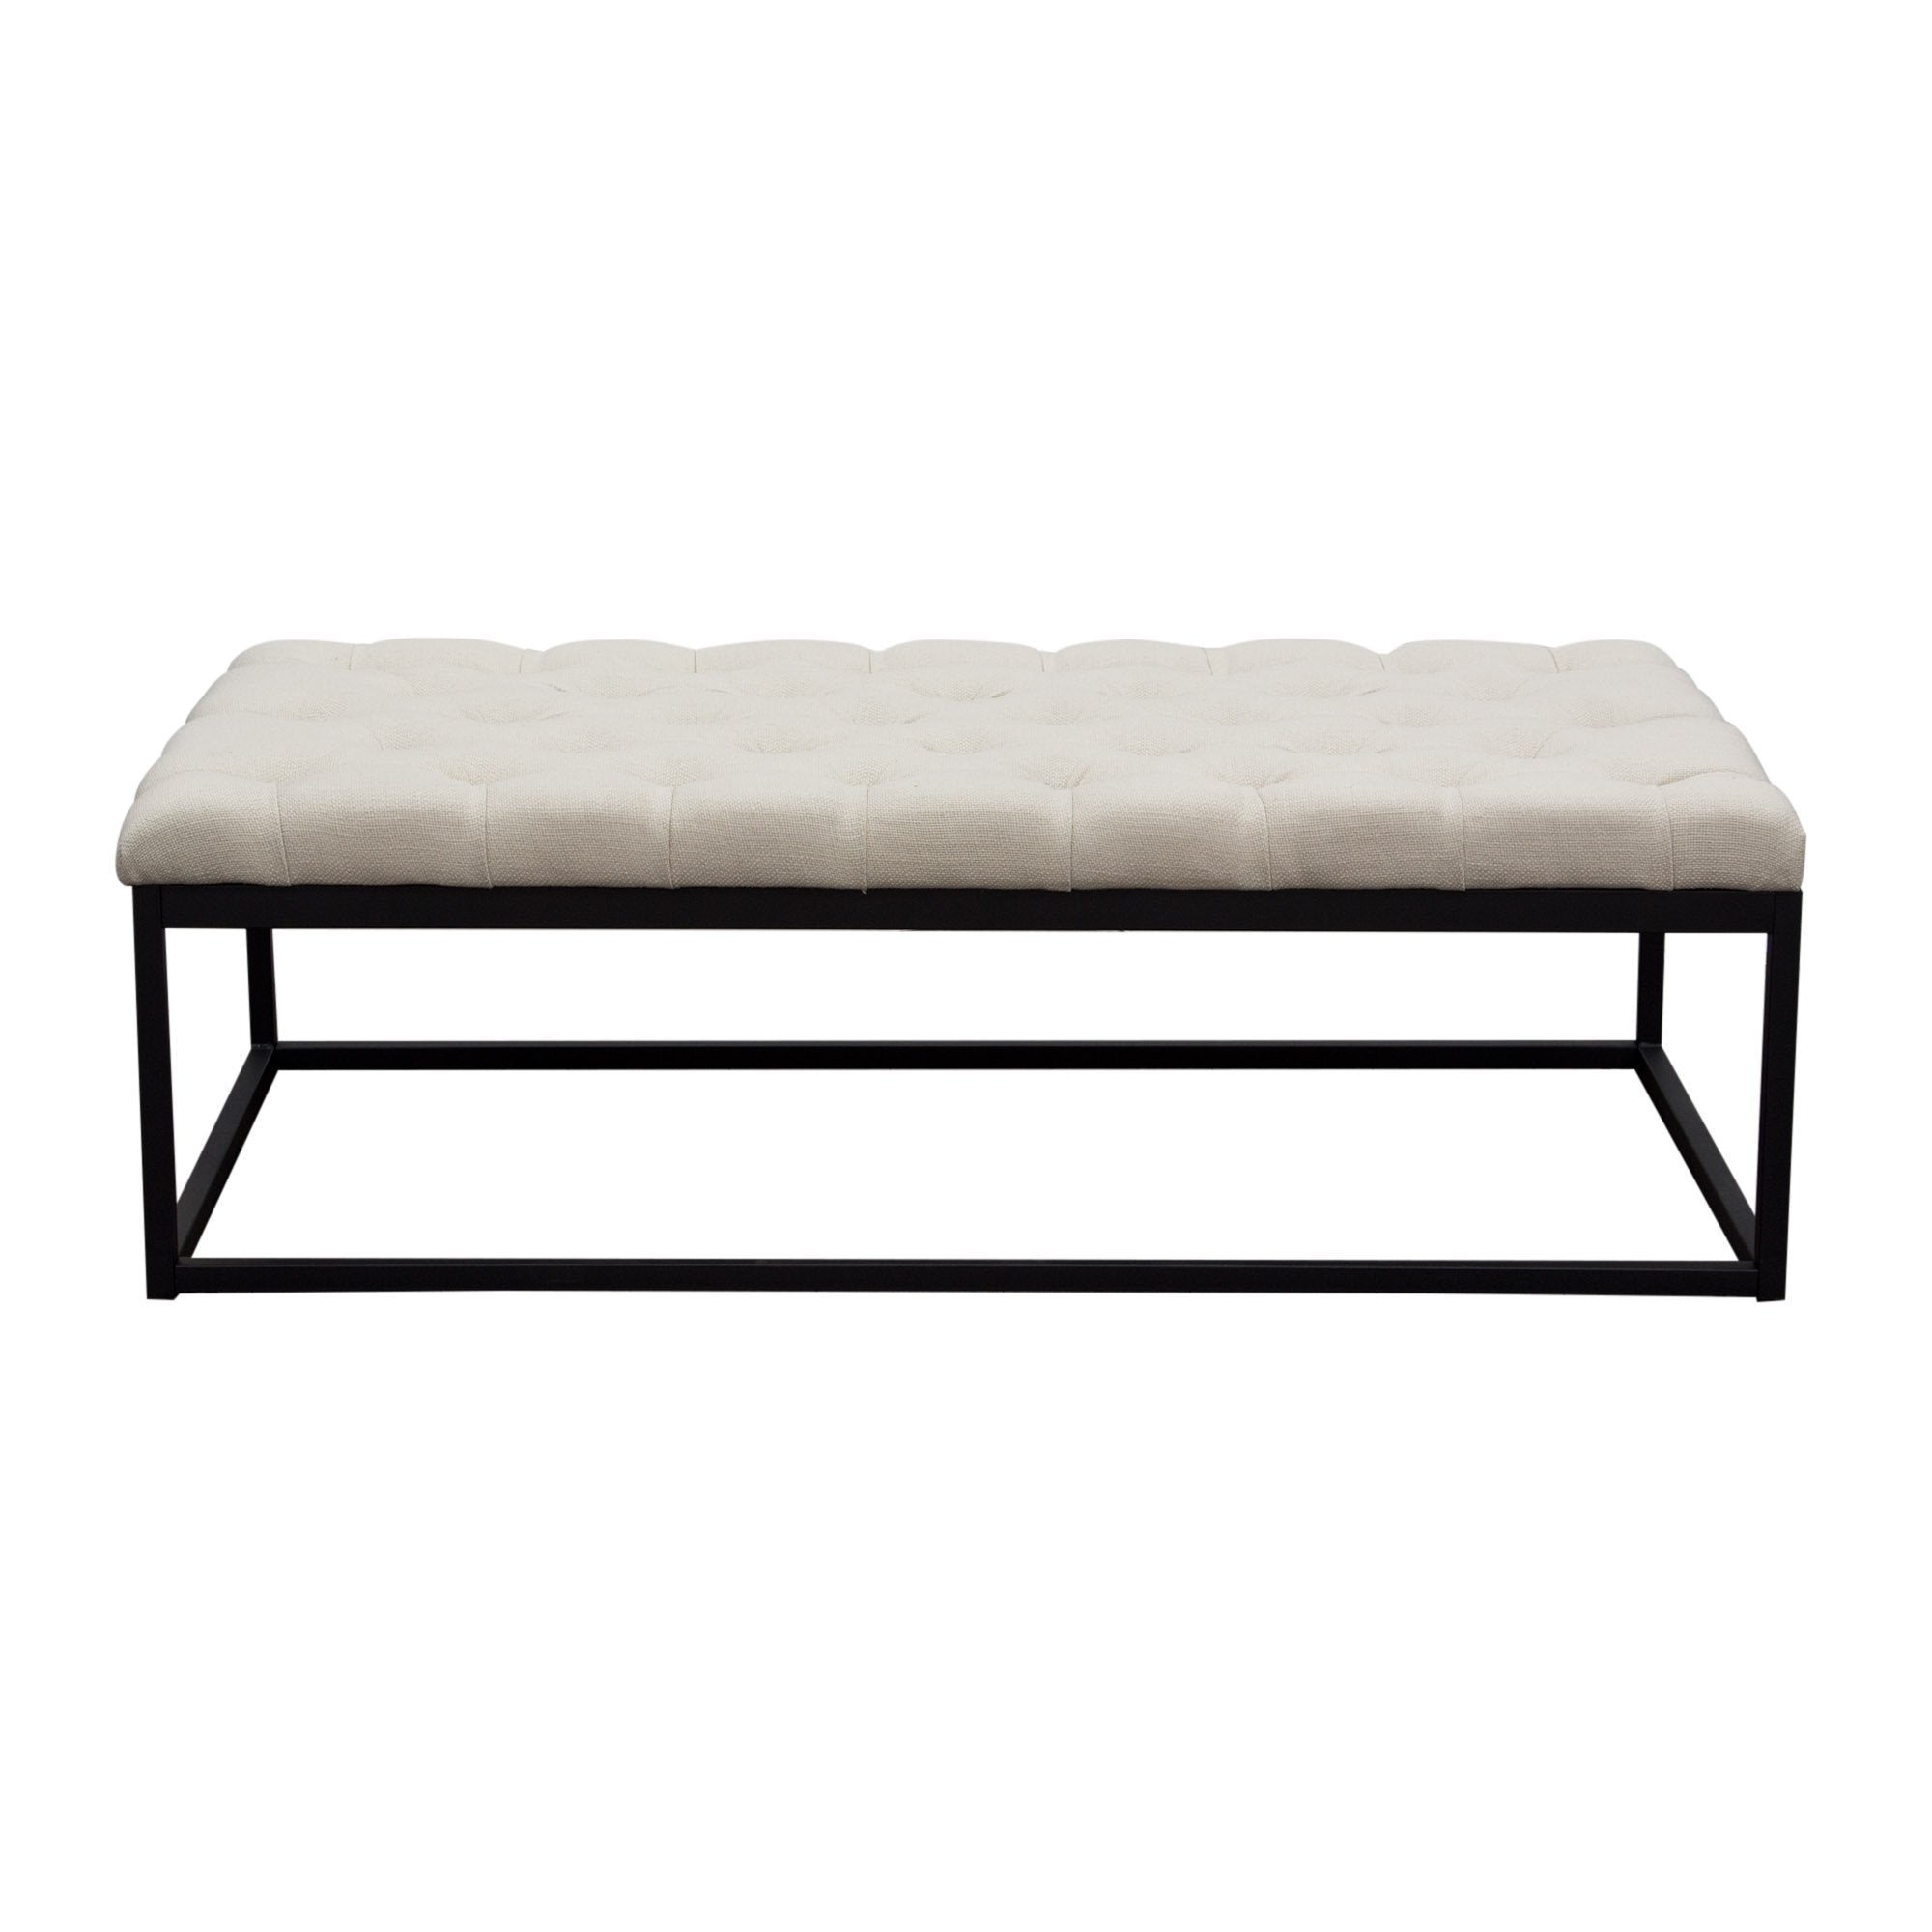 Mateo Large Linen Bench in Desert Sand